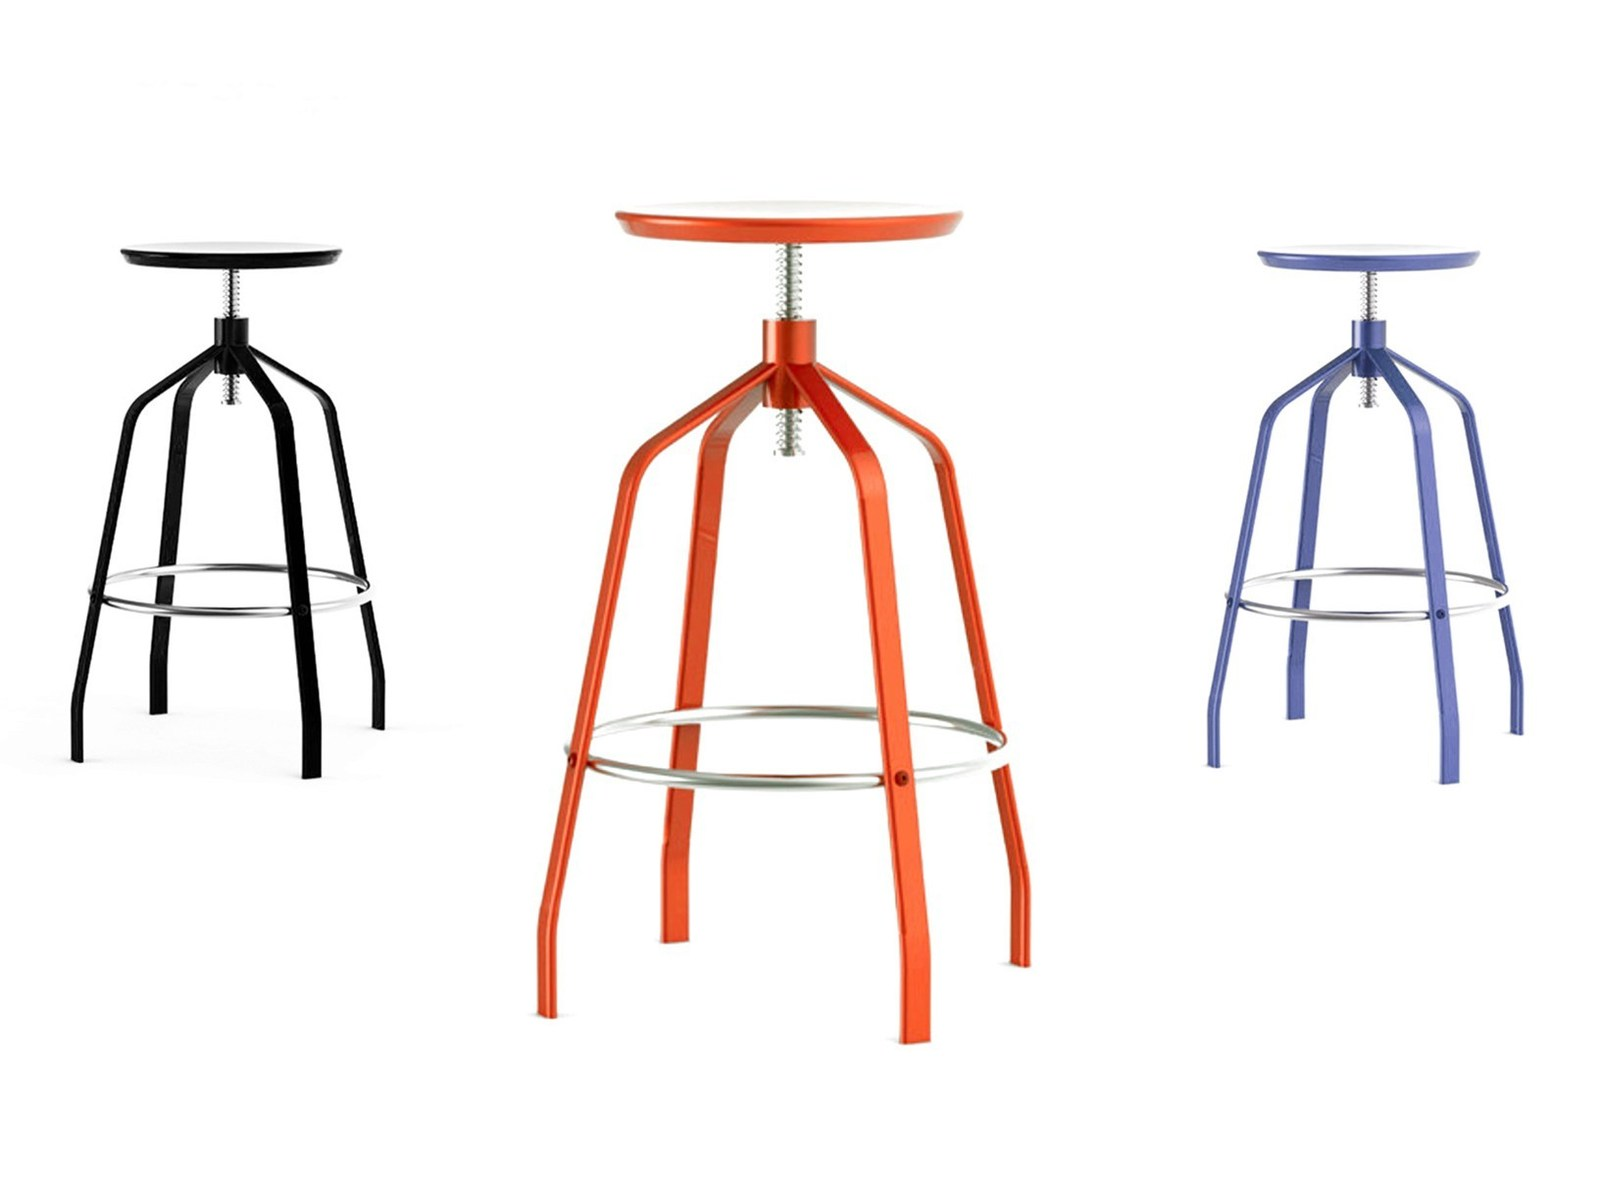 elegant-minimalist-adjustable-height-bar-stool-1-thumb-1600xauto-53672